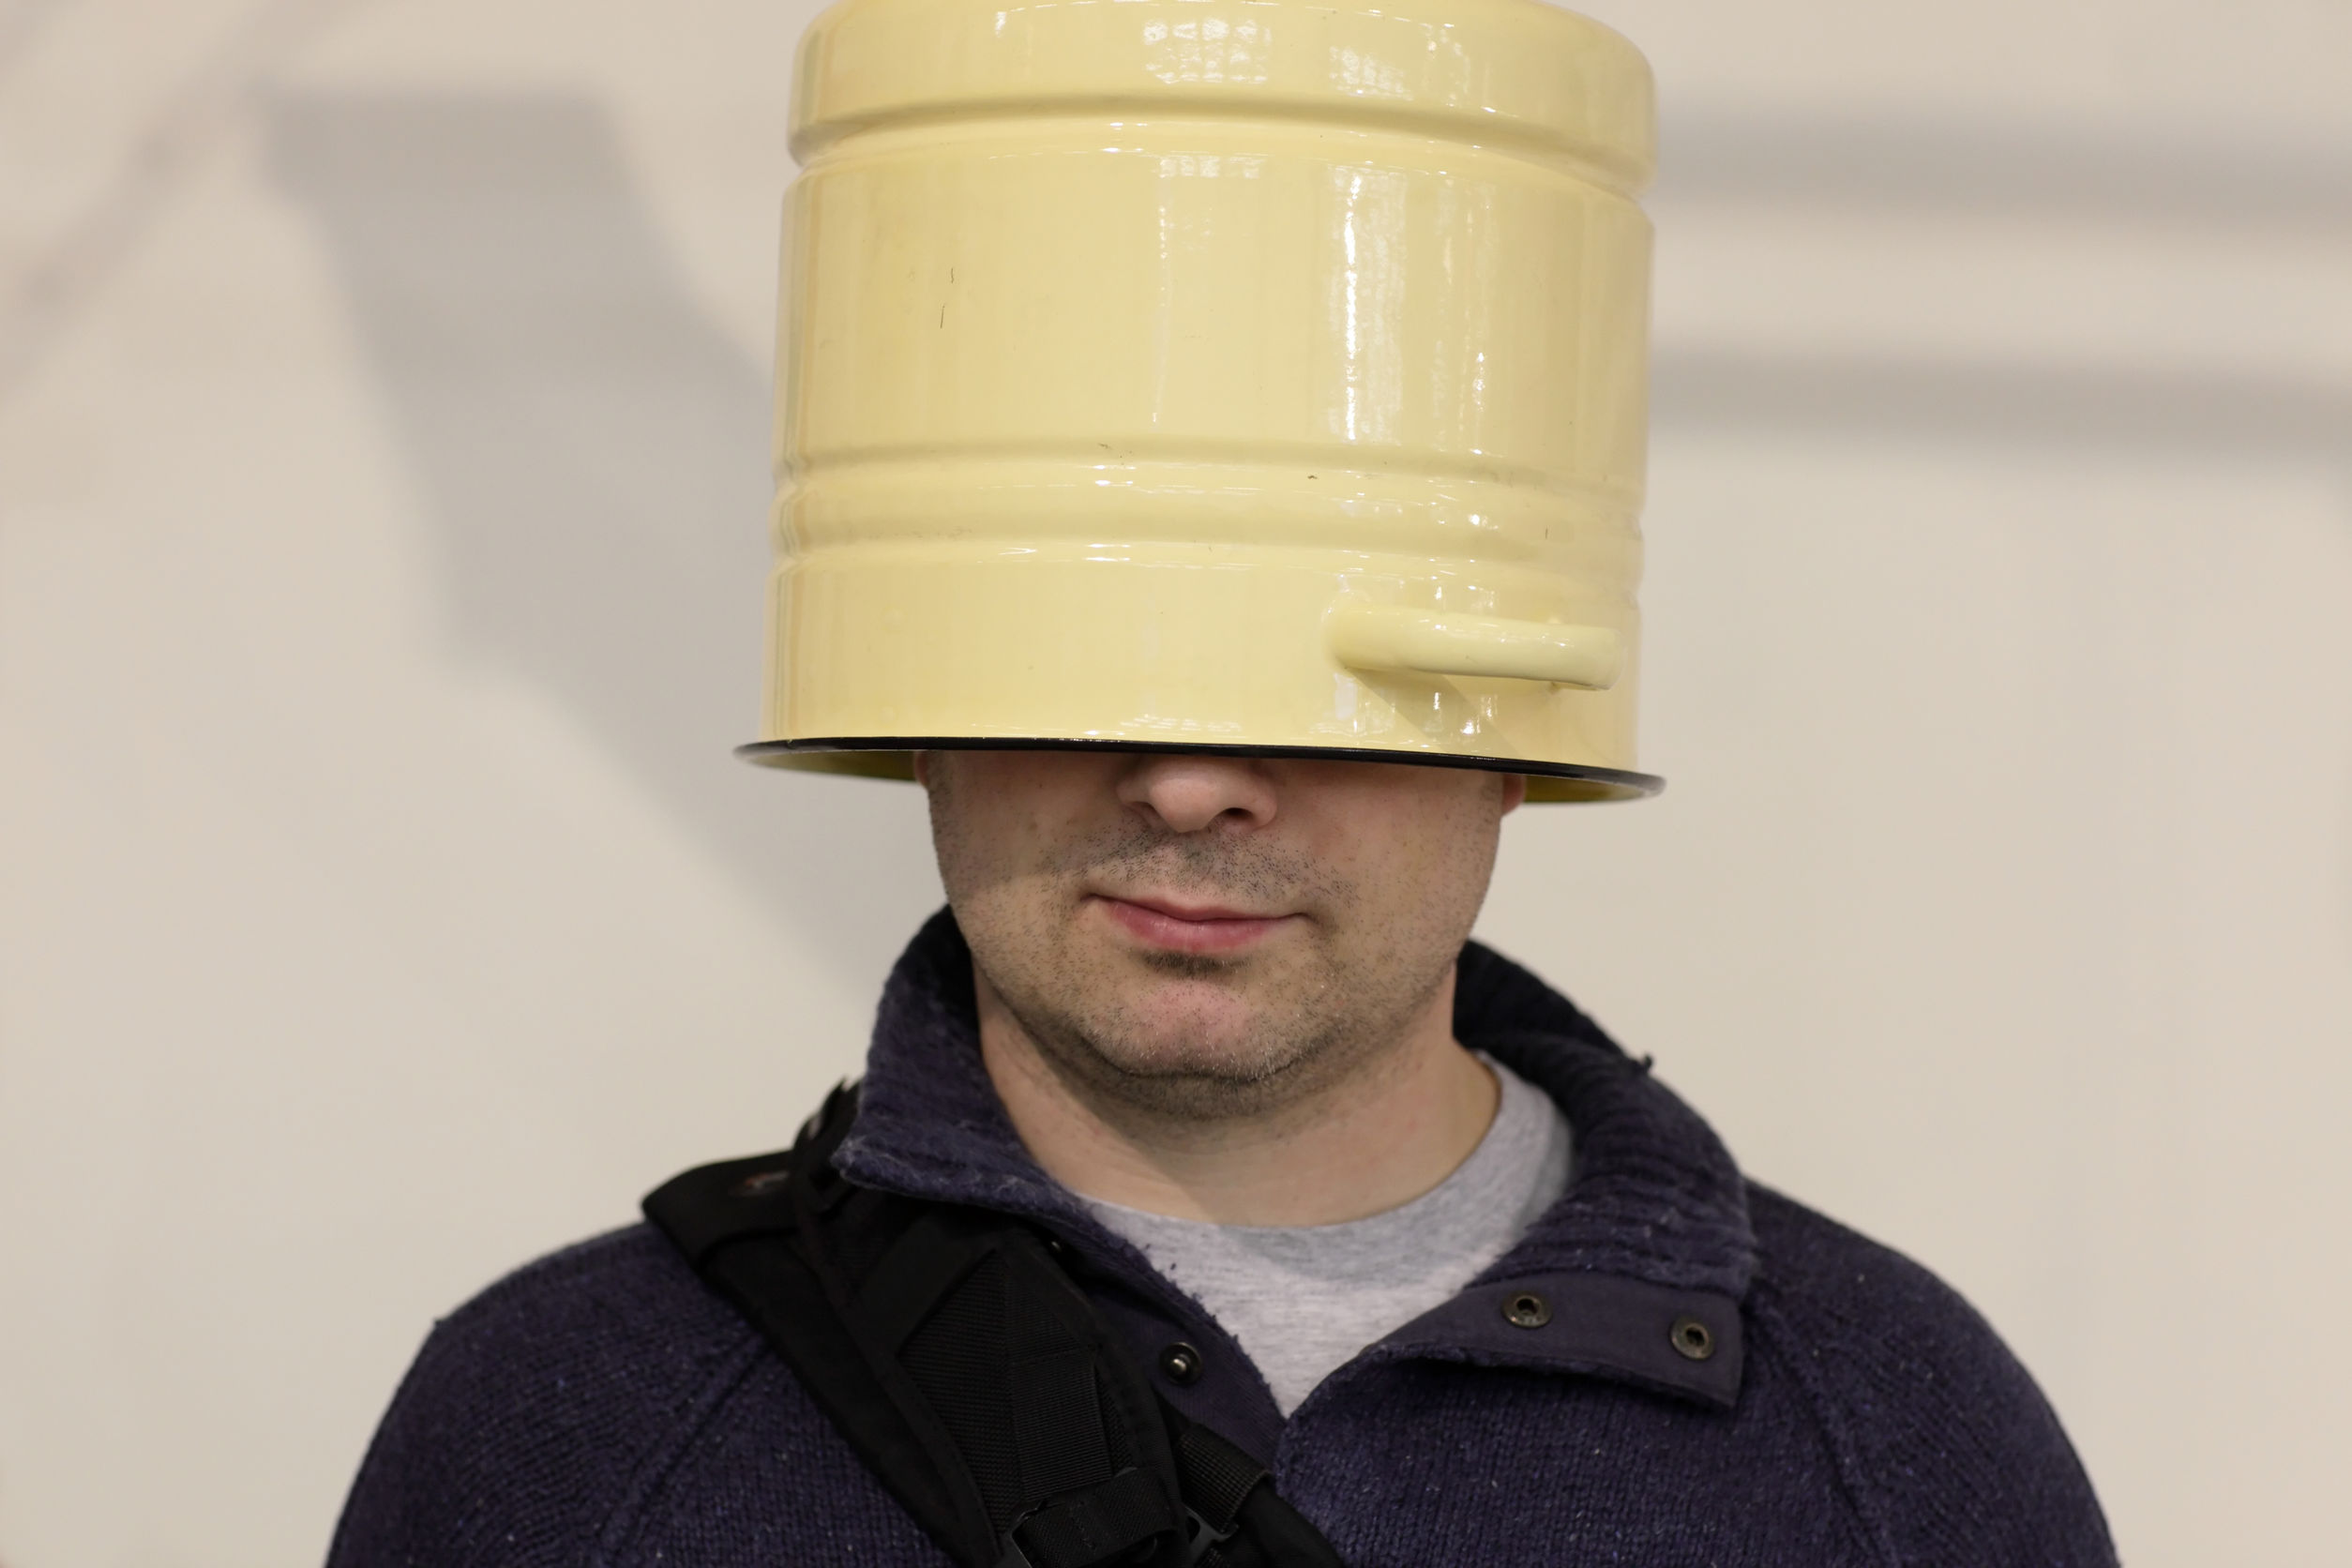 25449118 - the blinkered man with a bucket on his head